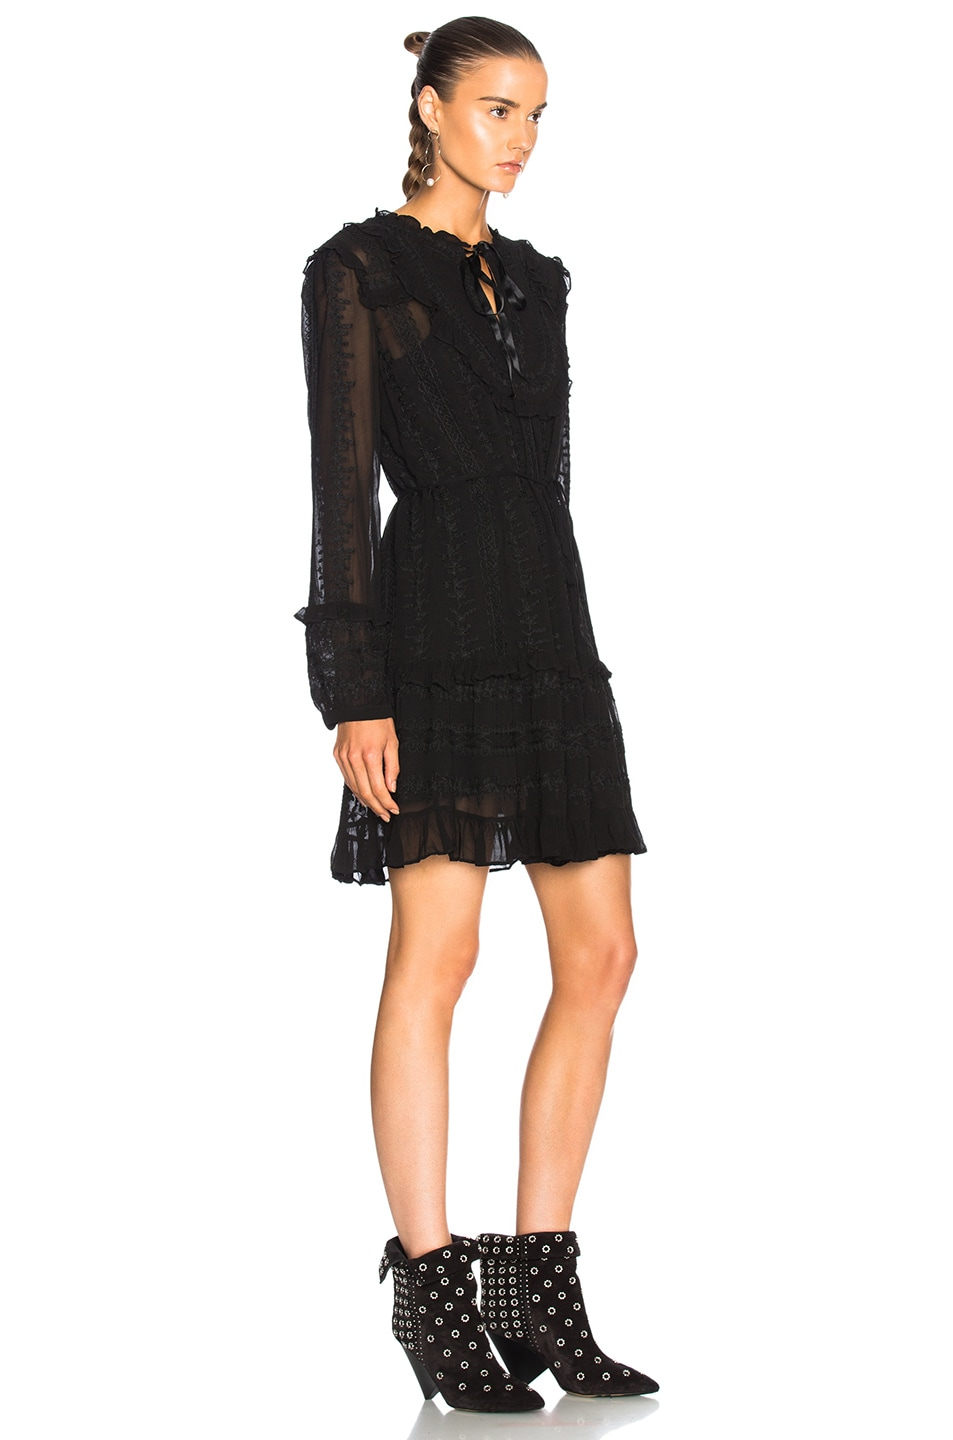 a7aca97dd638af Image of needle thread rose chain dress in washed black jpg 953x1440 Rose  chain dress